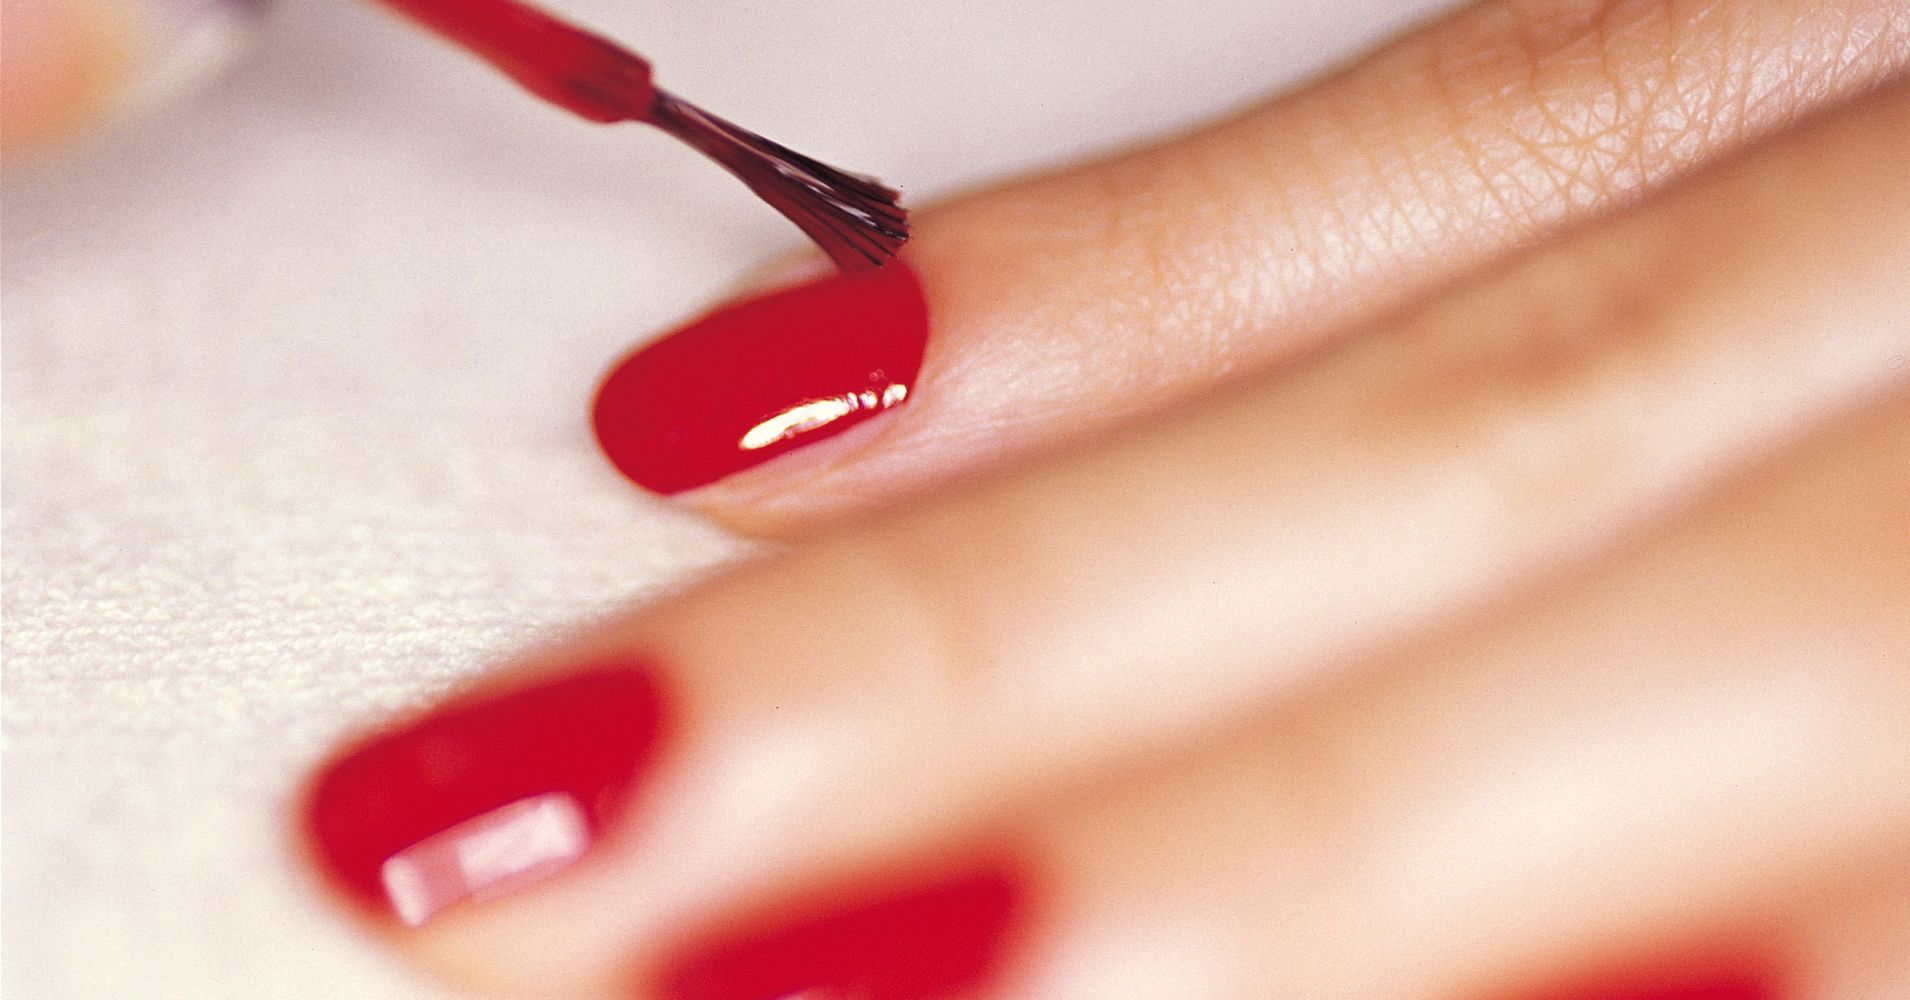 Yes, Chemicals In Nail Polish Can Leach Into Your Body | HuffPost Life